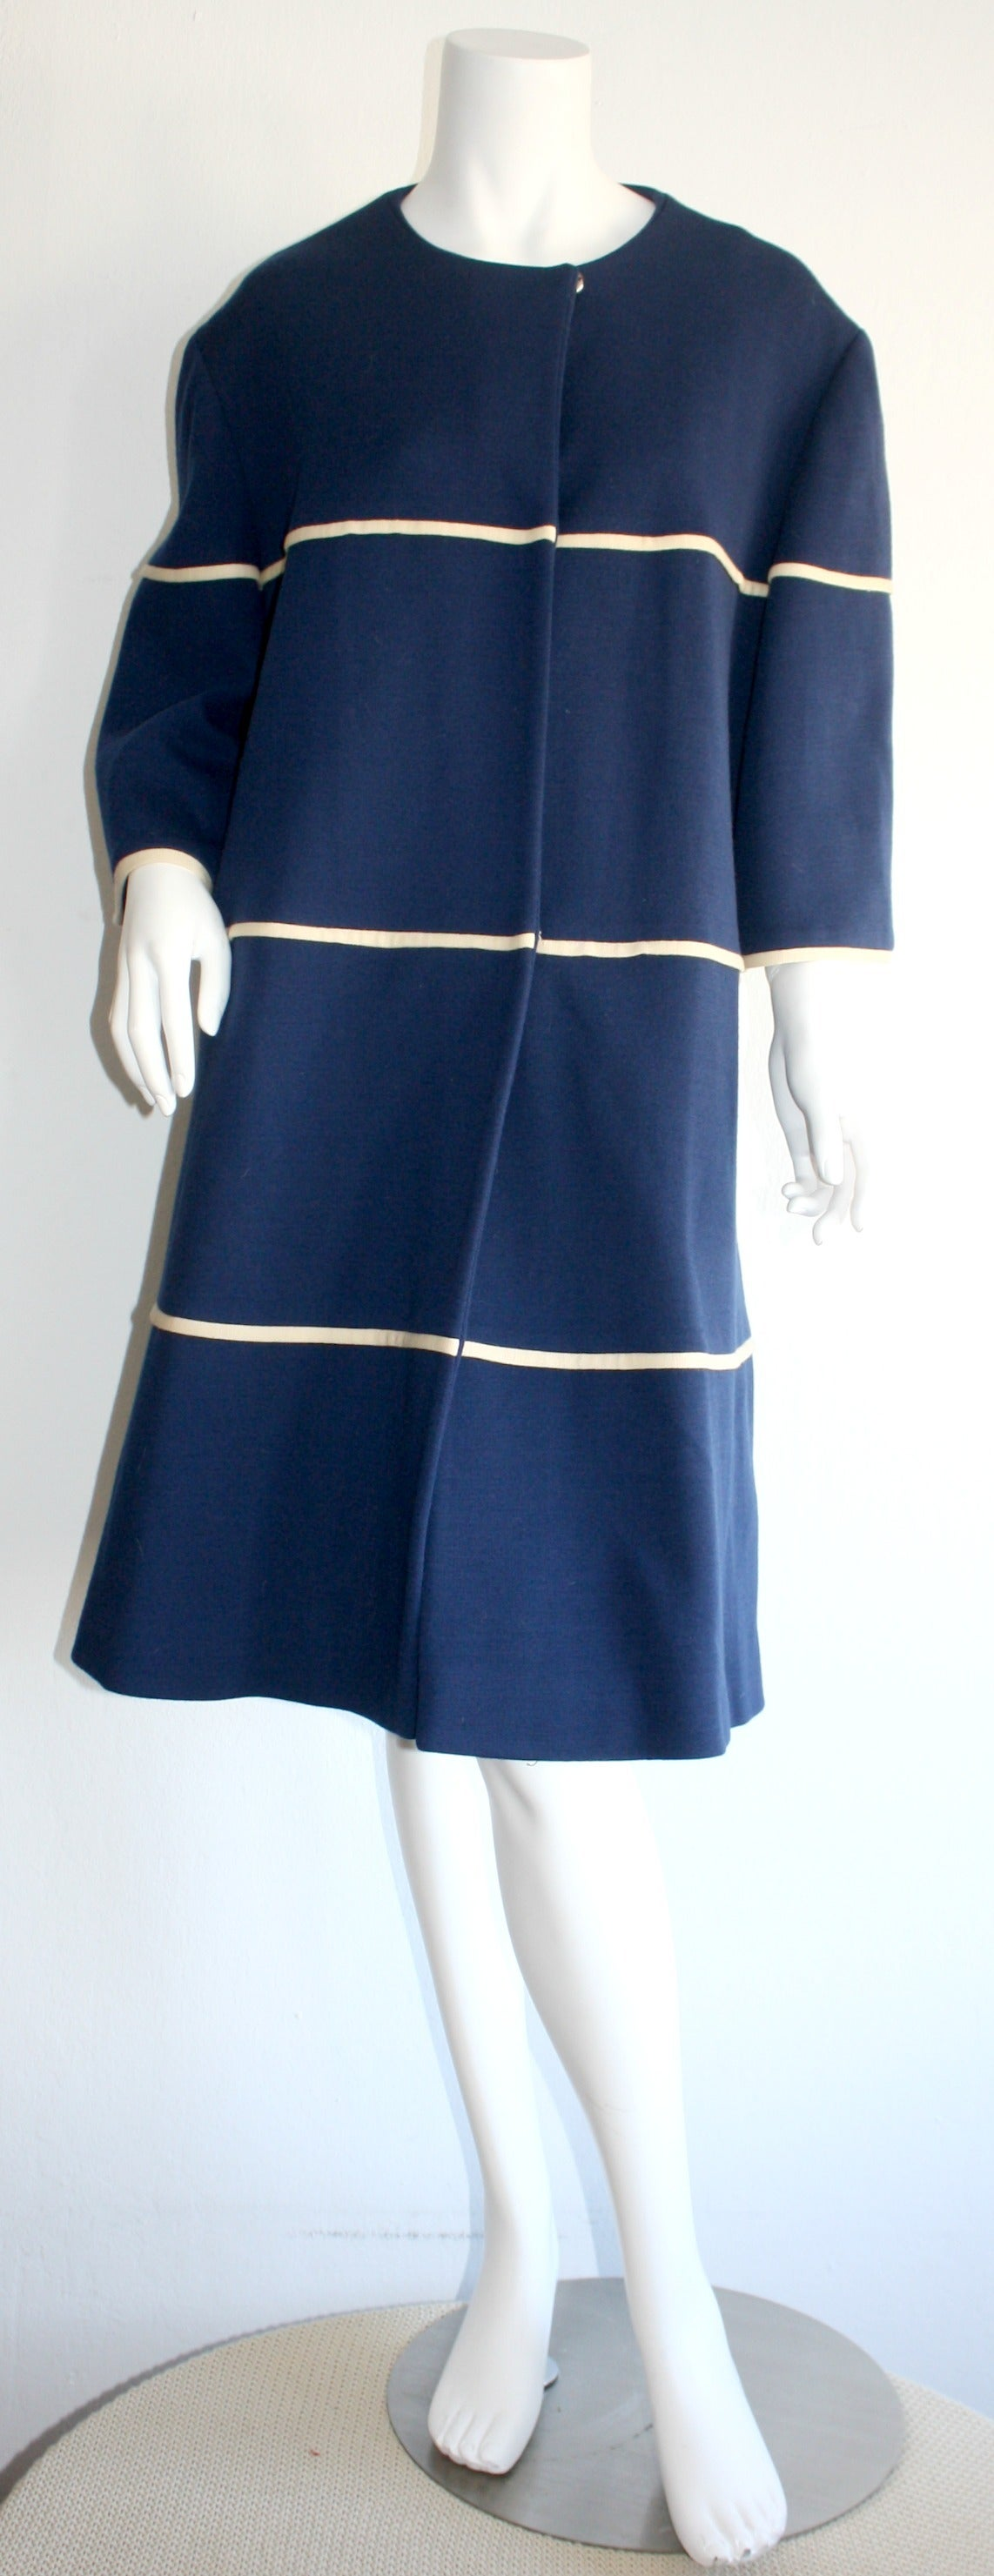 Wonderful vintage 1960s Lilli Ann navy blue swing jacket! Vibrant navy color, with ivory horizontal striped cords. Snaps down the front. Fully lined. In great condition. Will fit most sizes.